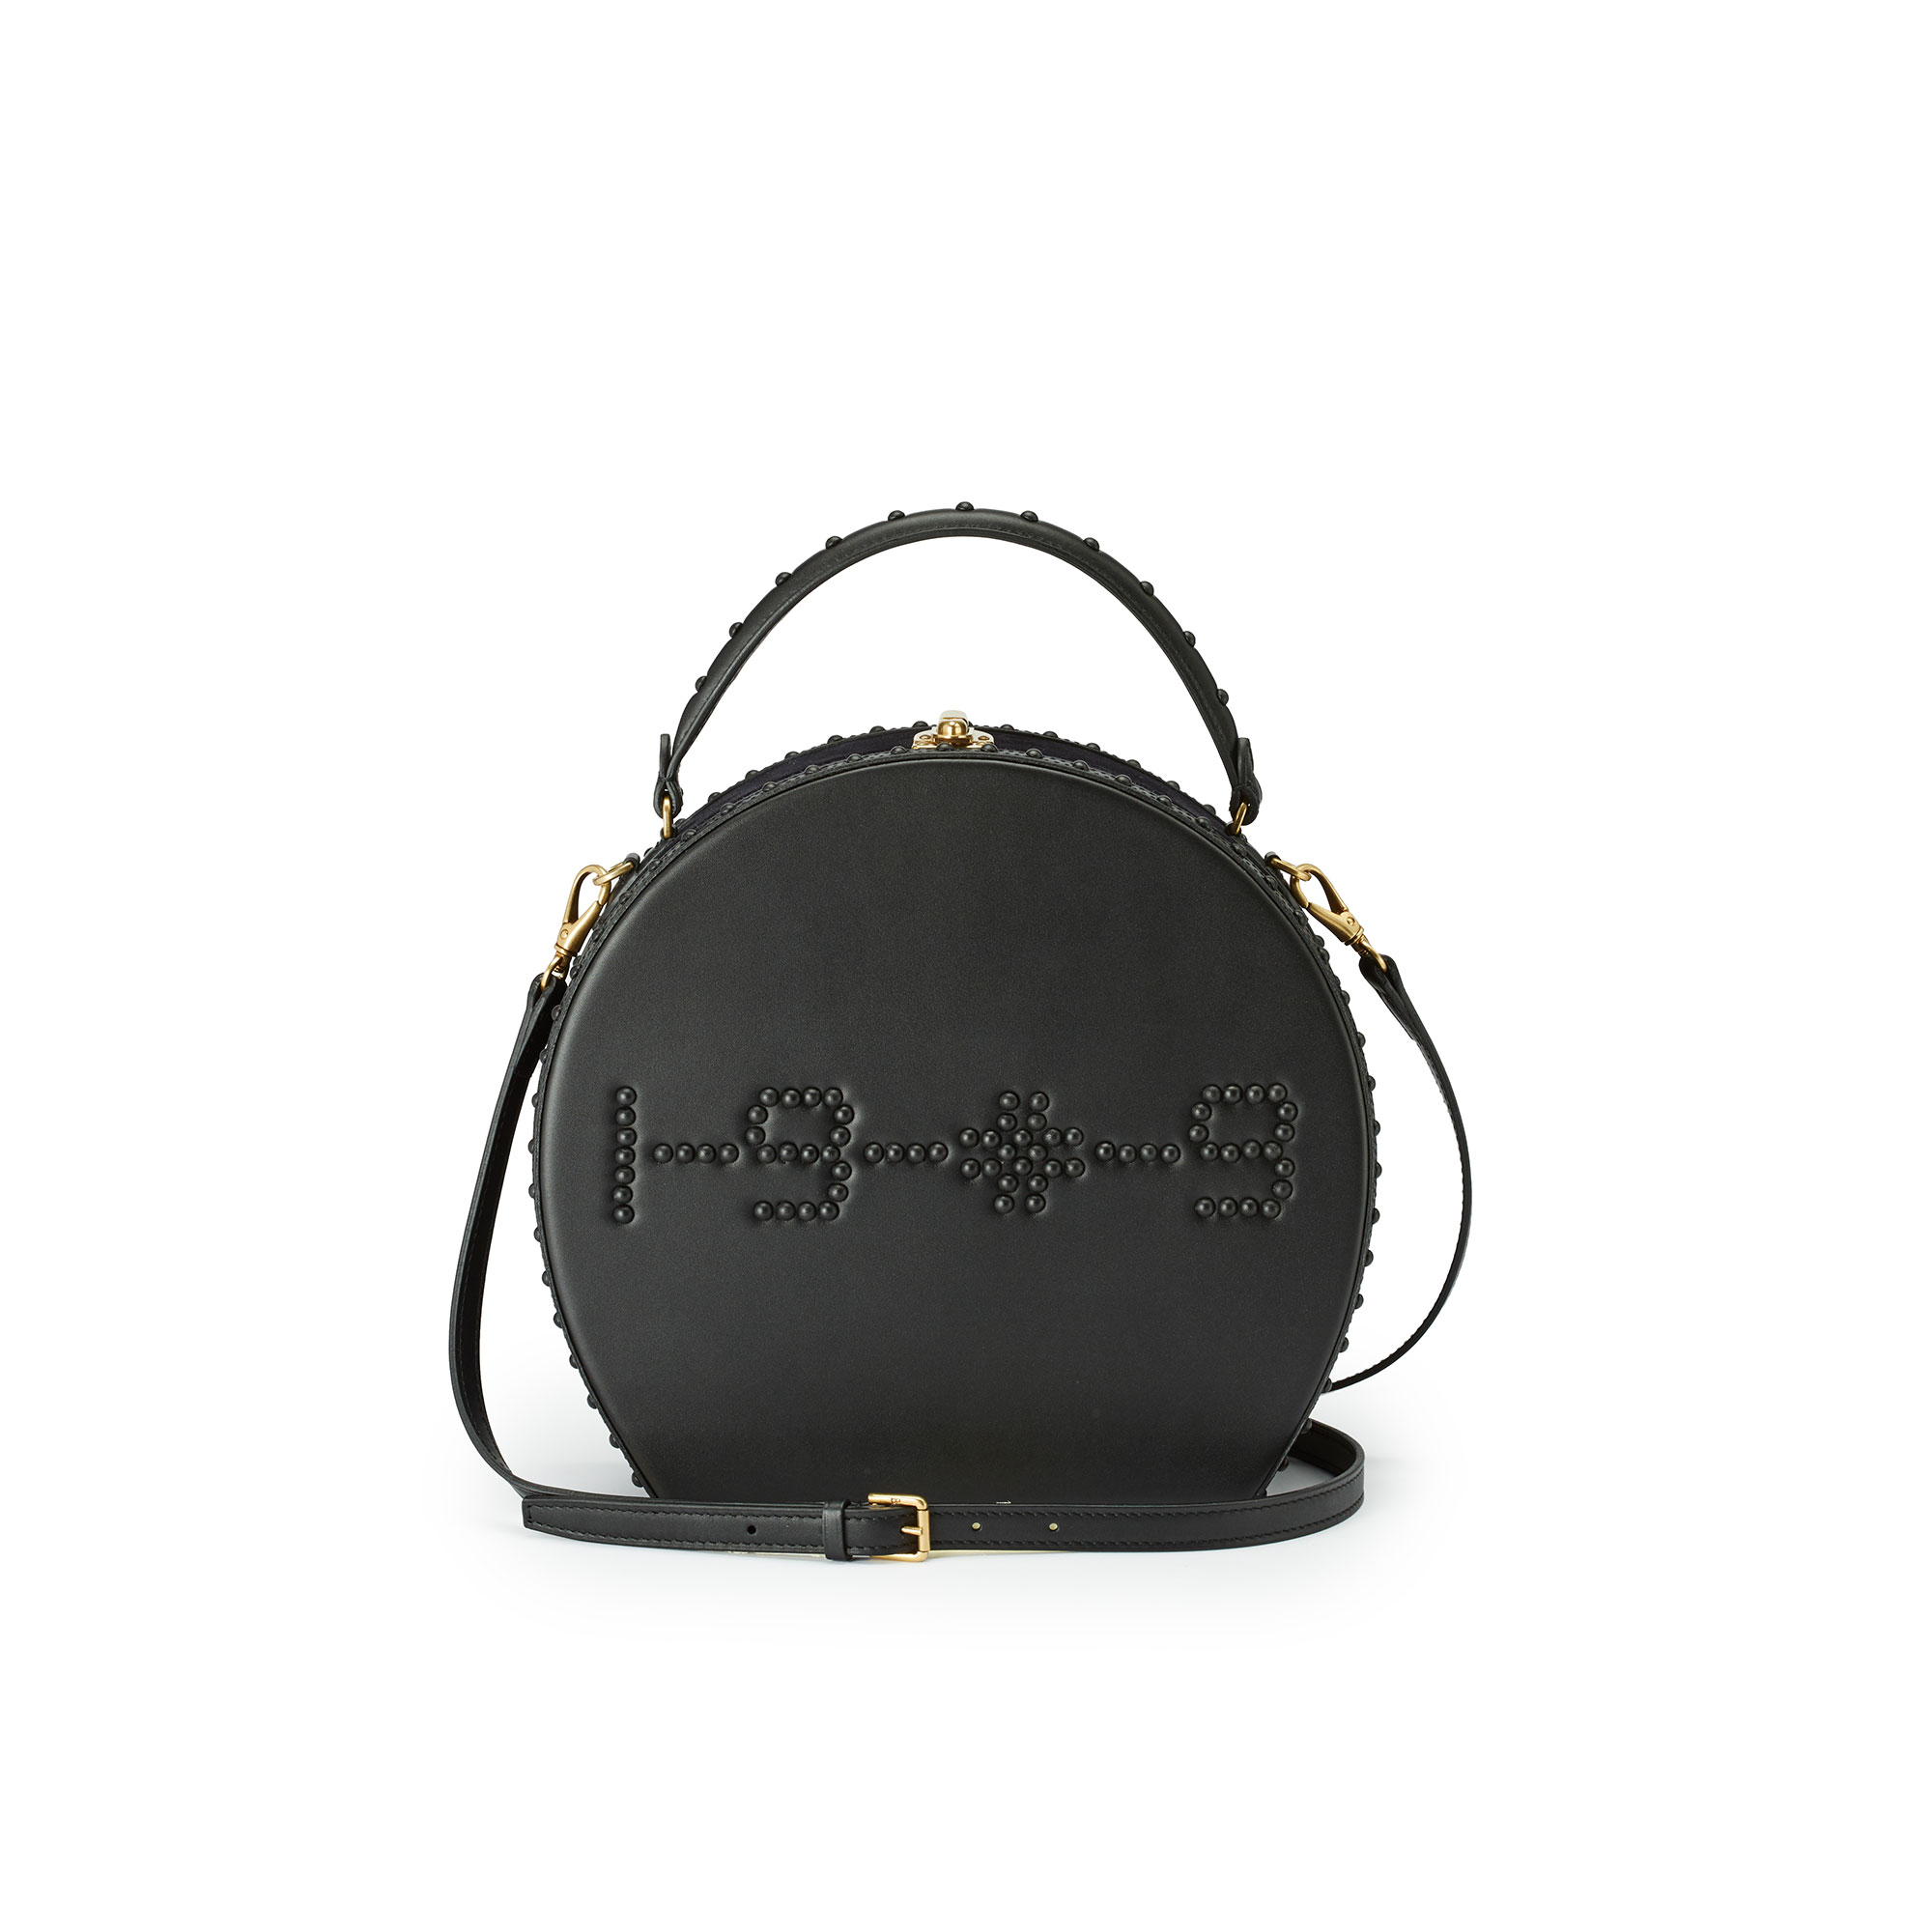 Large-Bertoncina-black-french-calf-bag-Bertoni-1949